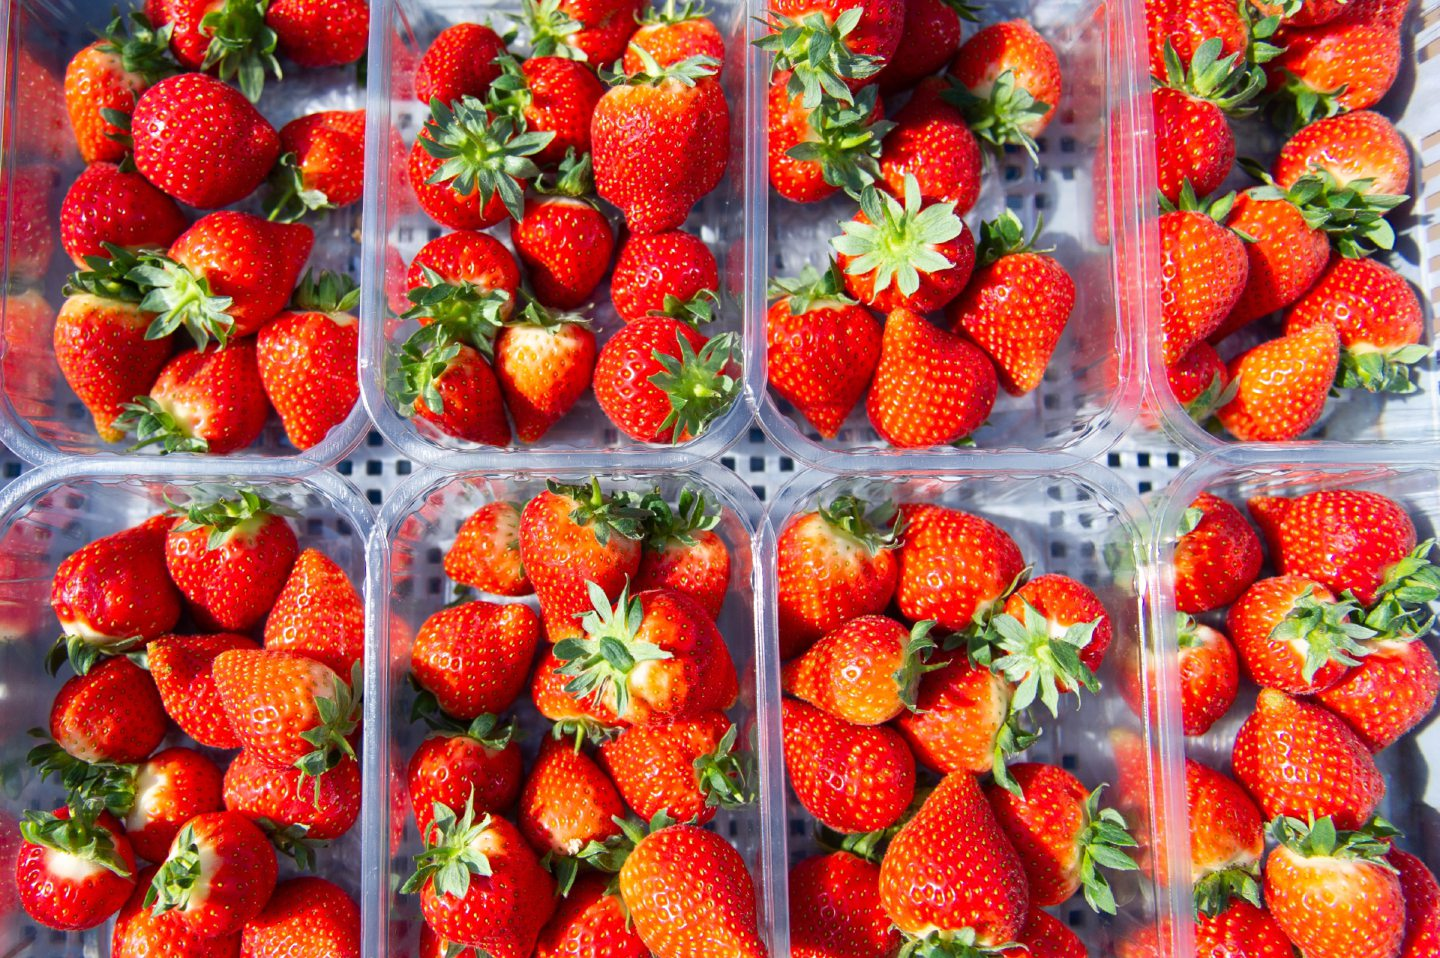 Strawberries at Barnsmuir Farm.